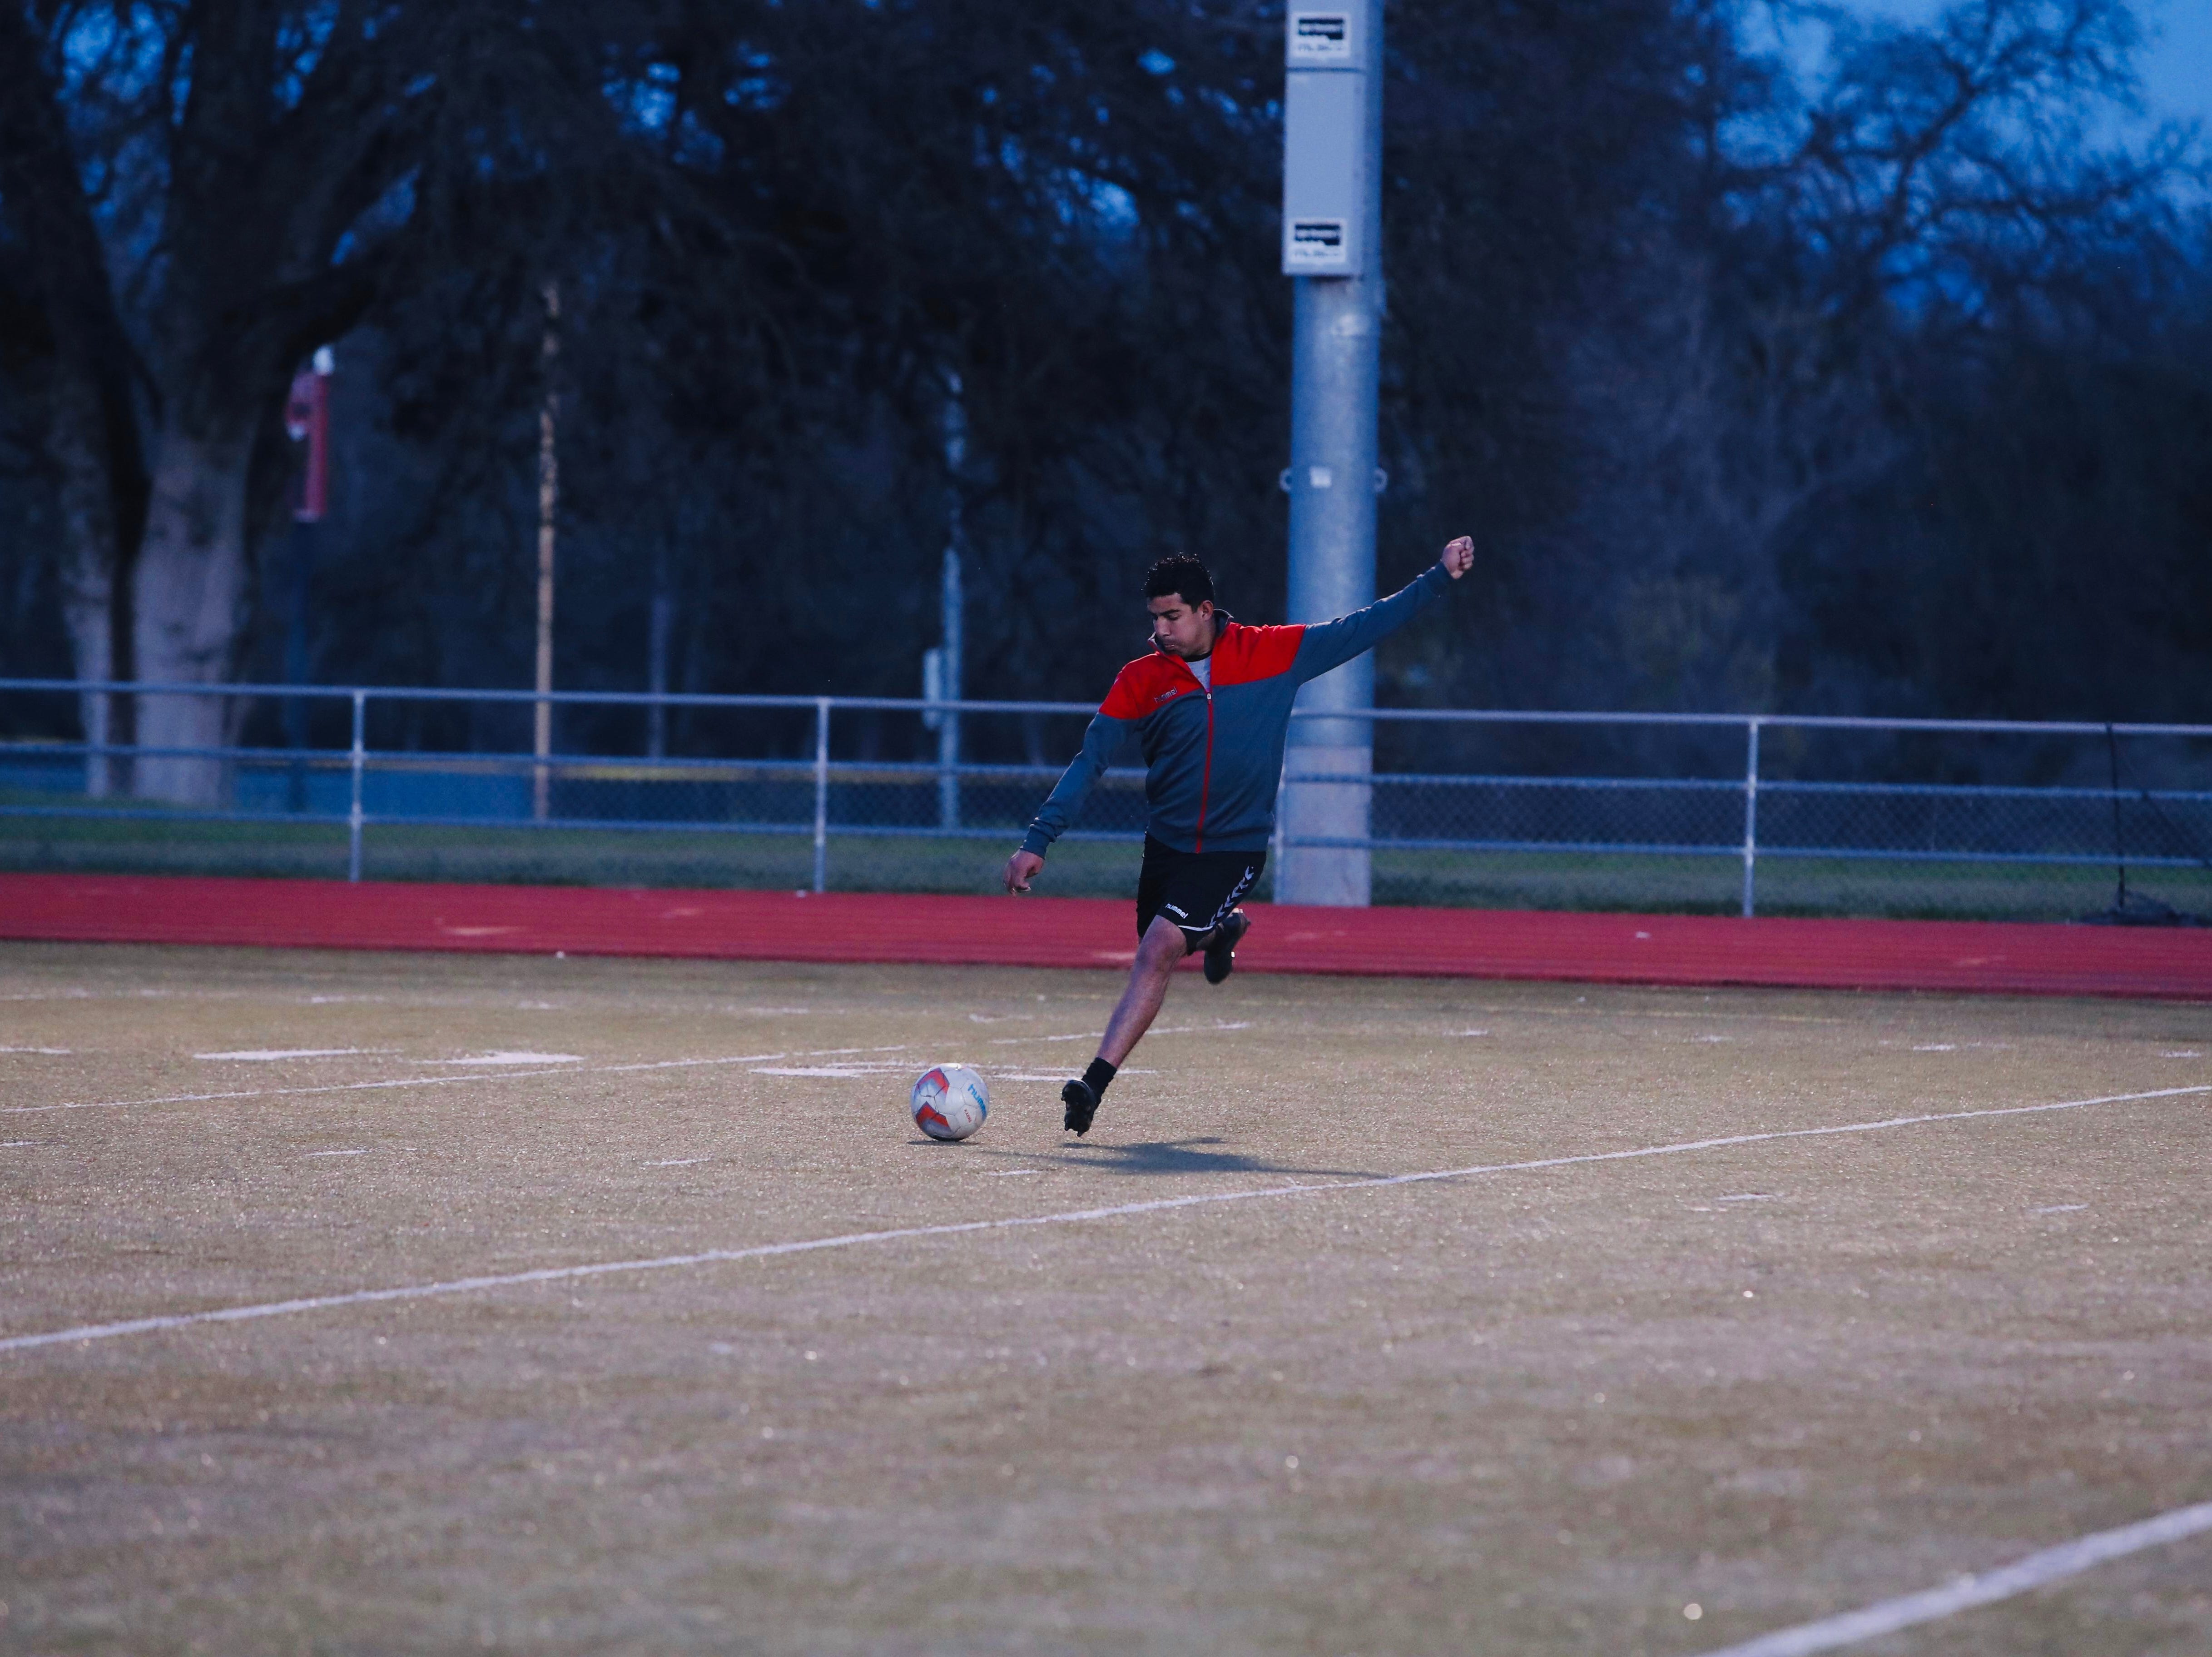 Dani Gonzalez and other players with Redding Royals F.C. practice at Foothill High on Thursday, March 21.